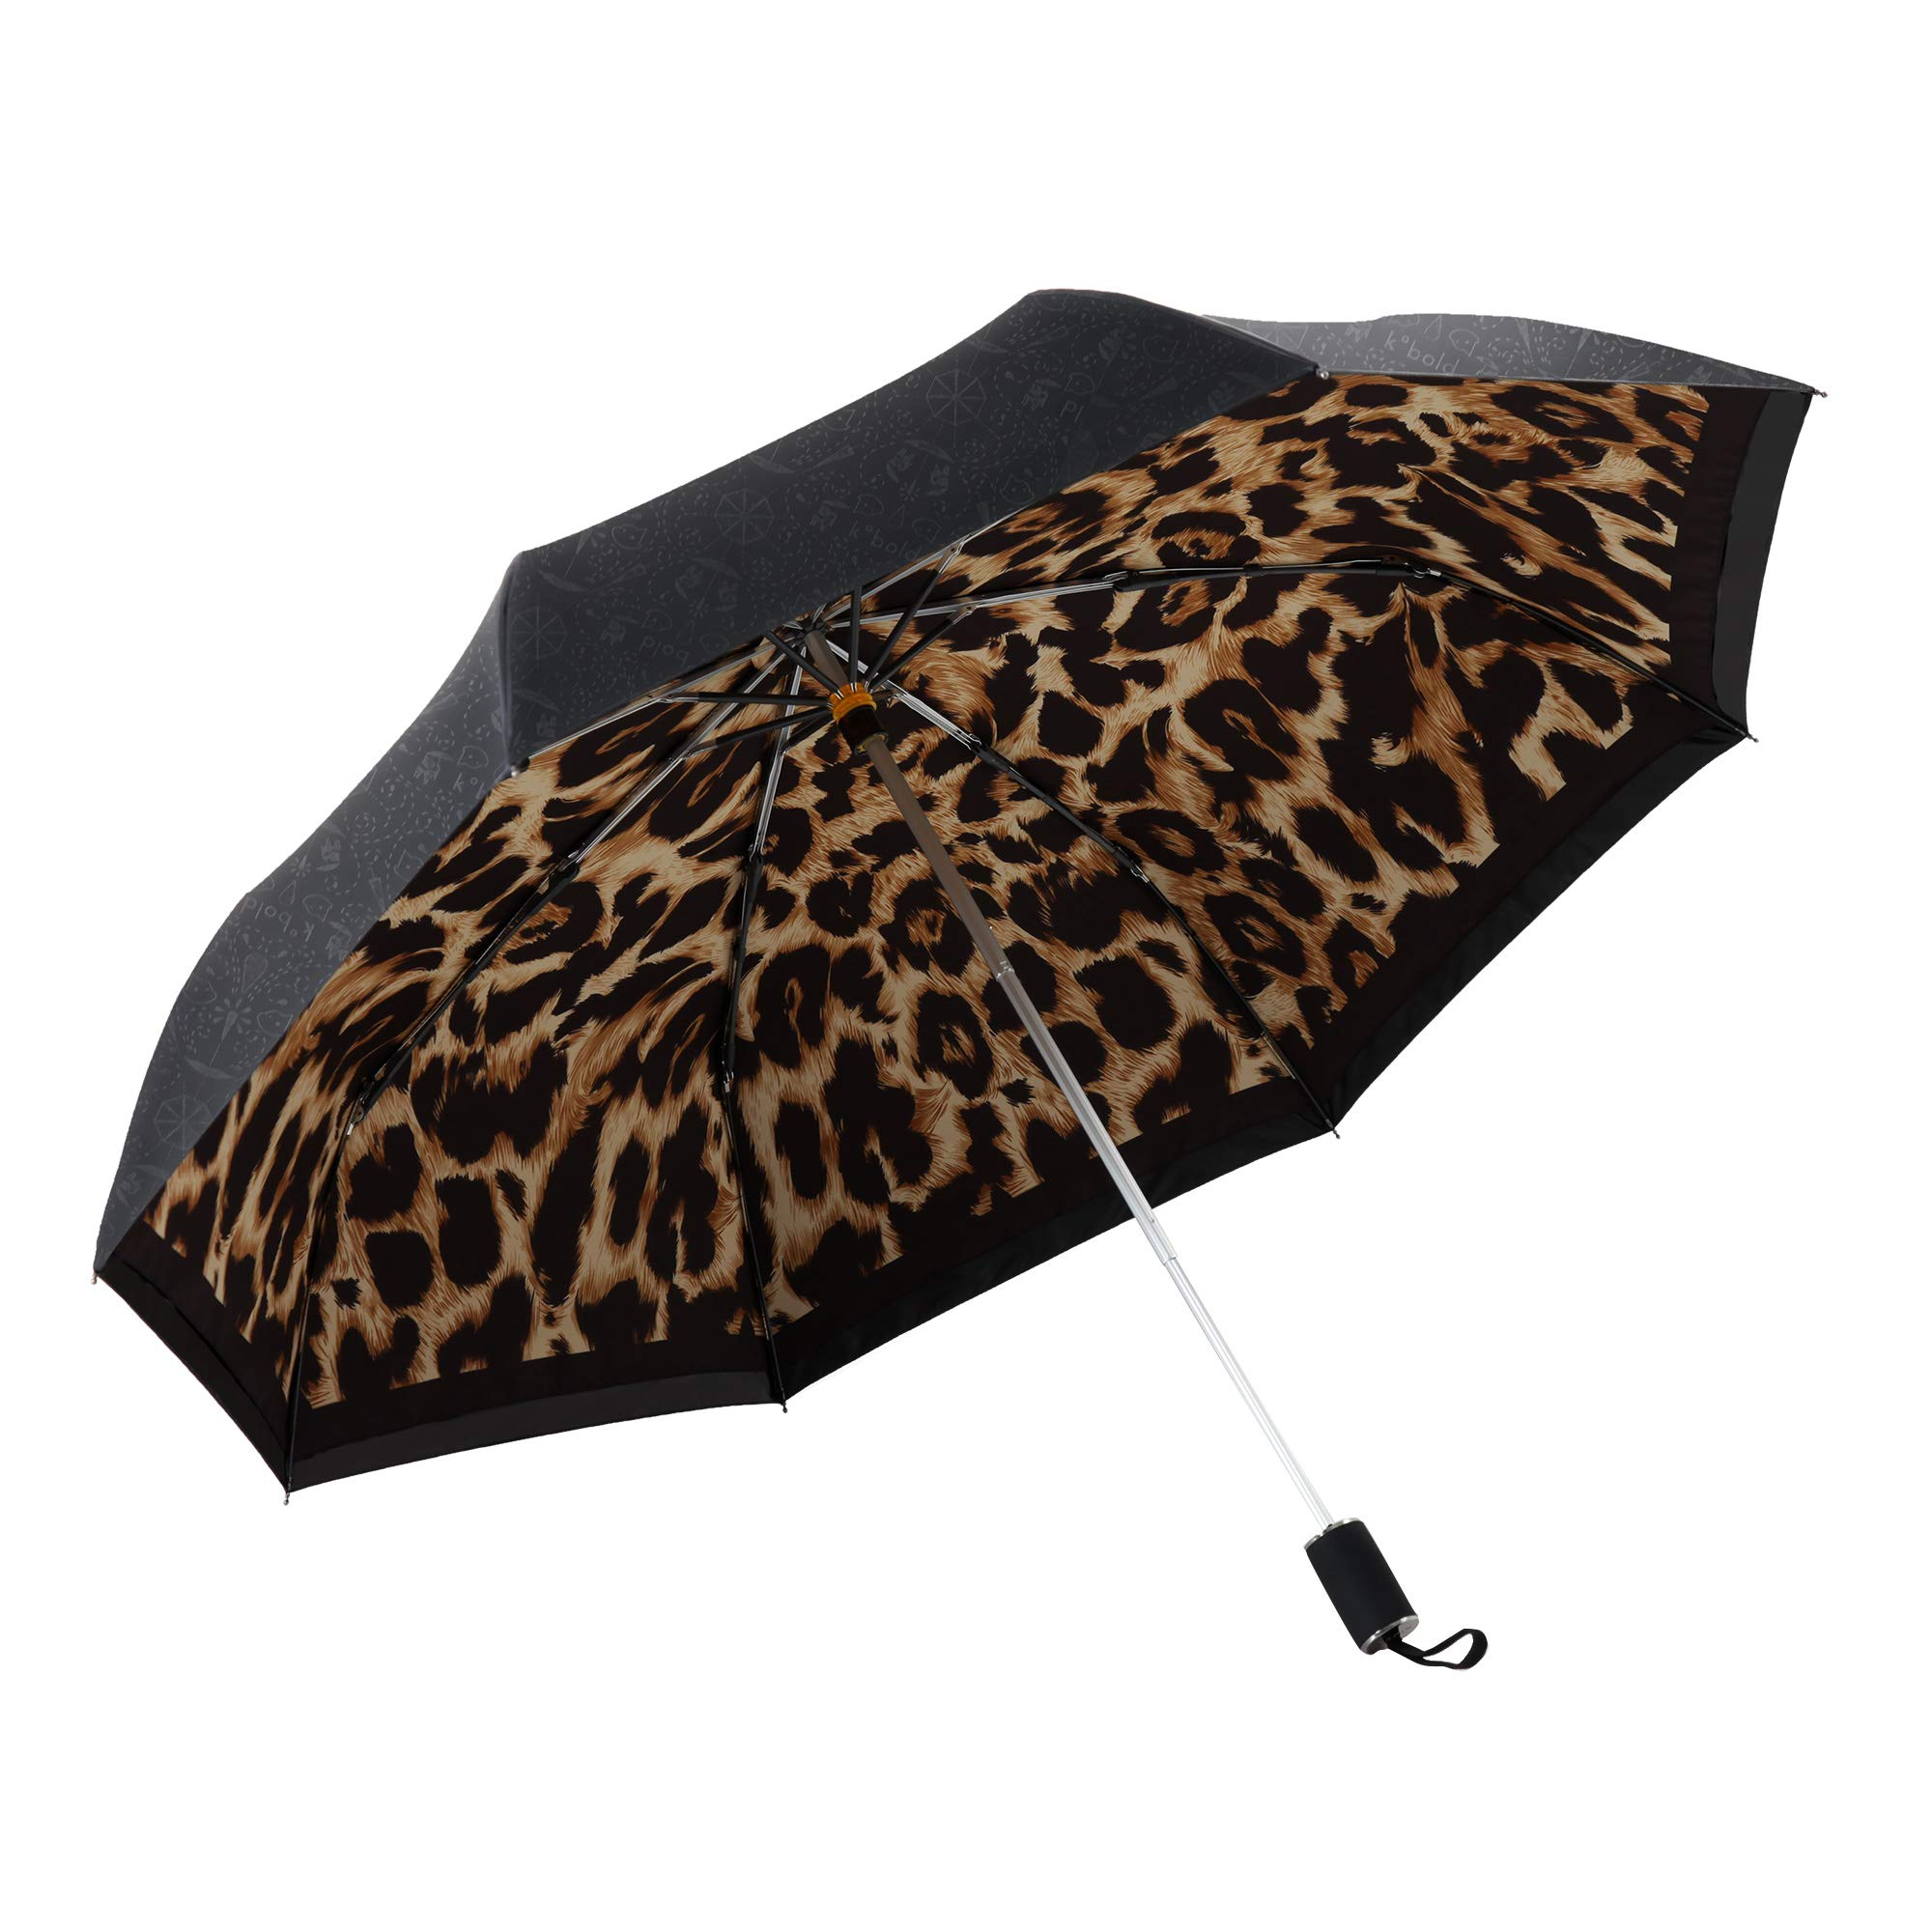 Kobold Silica Gel Handle Leopard Pattern Double Layers Canopy Parasol Umbrella Windproof Travel Compact UV Protection Umbrellas for Women Lightweight